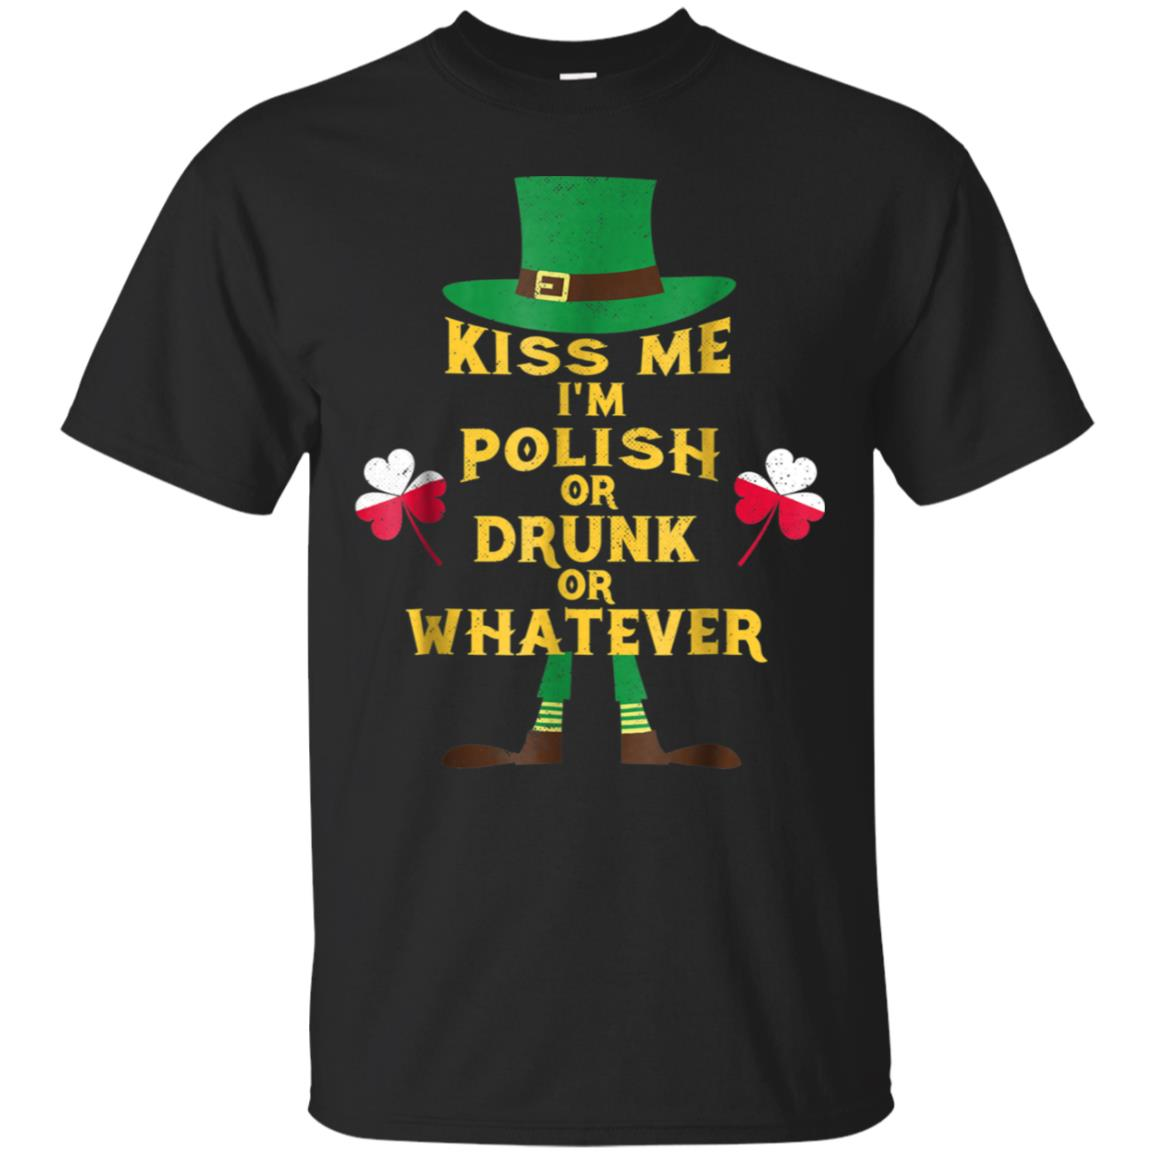 Kiss Me I'm Polish St Patrick's Day T-Shirt Irish Poland 99promocode